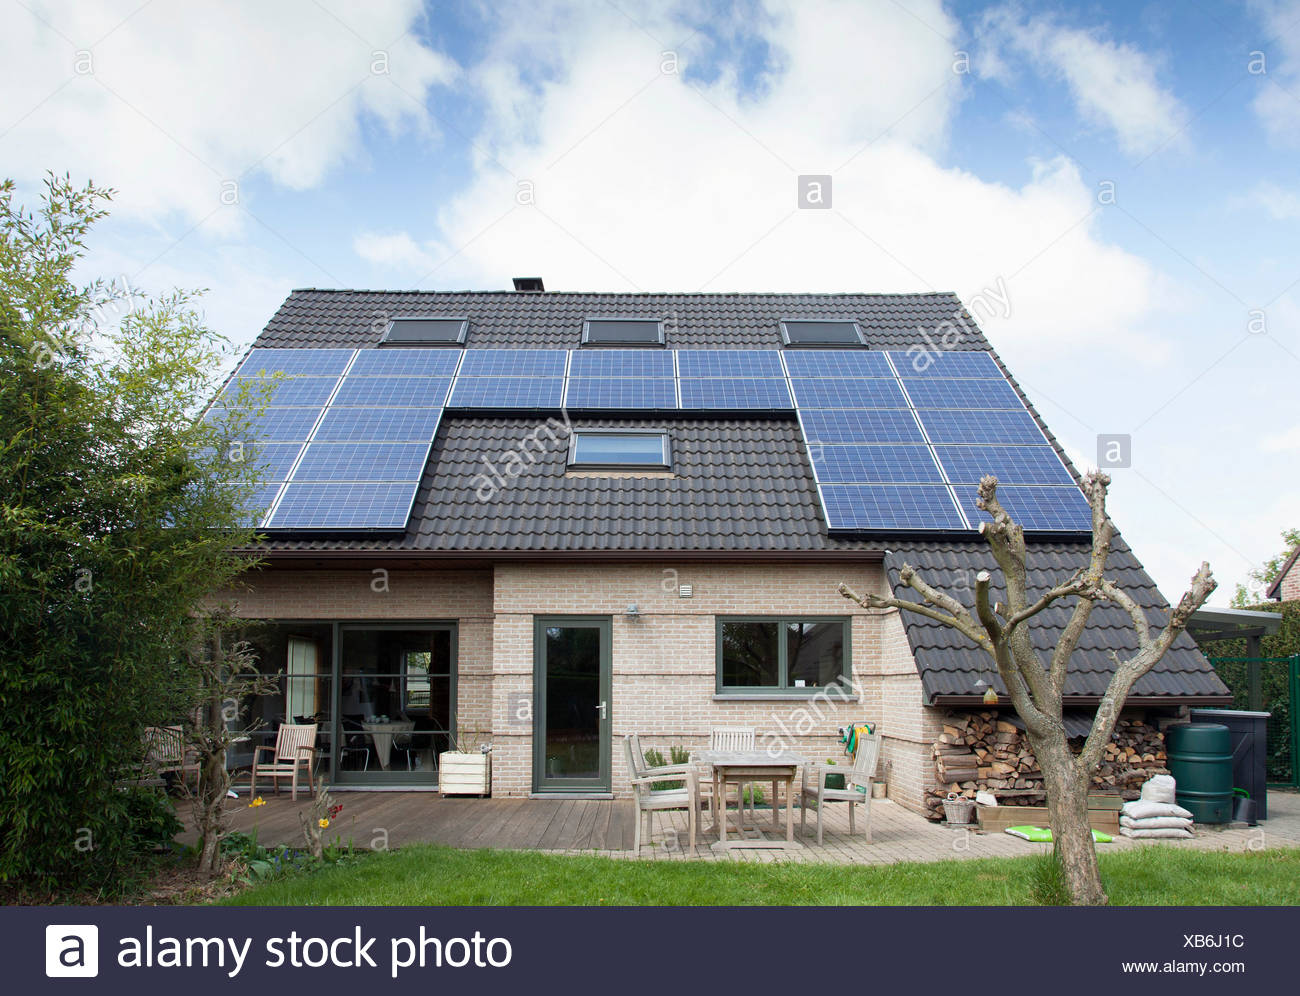 solar panels bungalow roof solar stockfotos solar panels bungalow roof solar bilder alamy. Black Bedroom Furniture Sets. Home Design Ideas